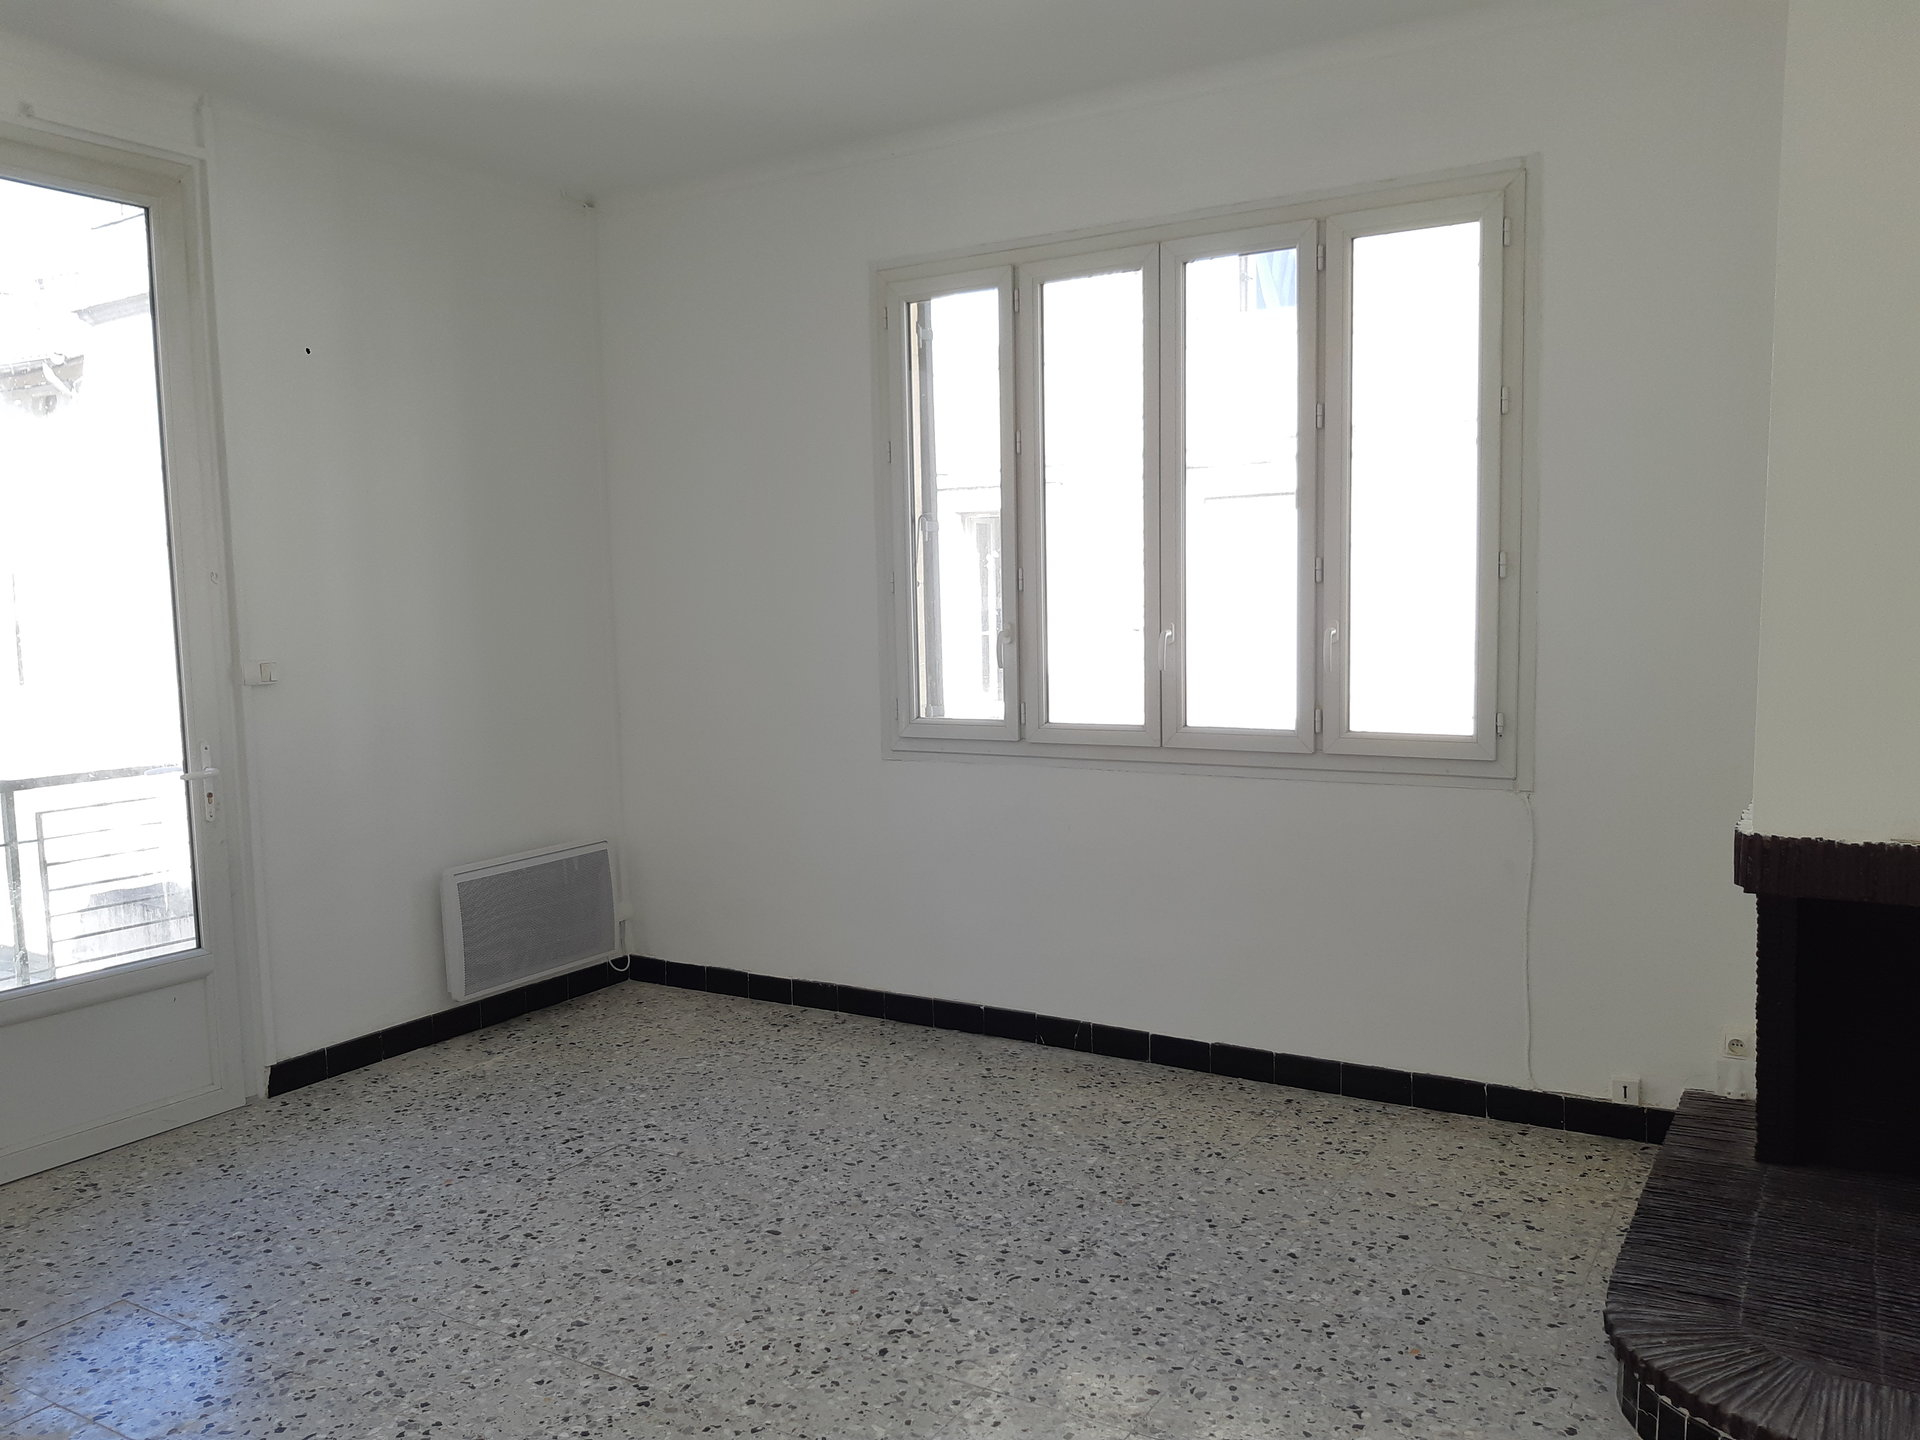 Location Appartement TARASCON Mandat : 0973